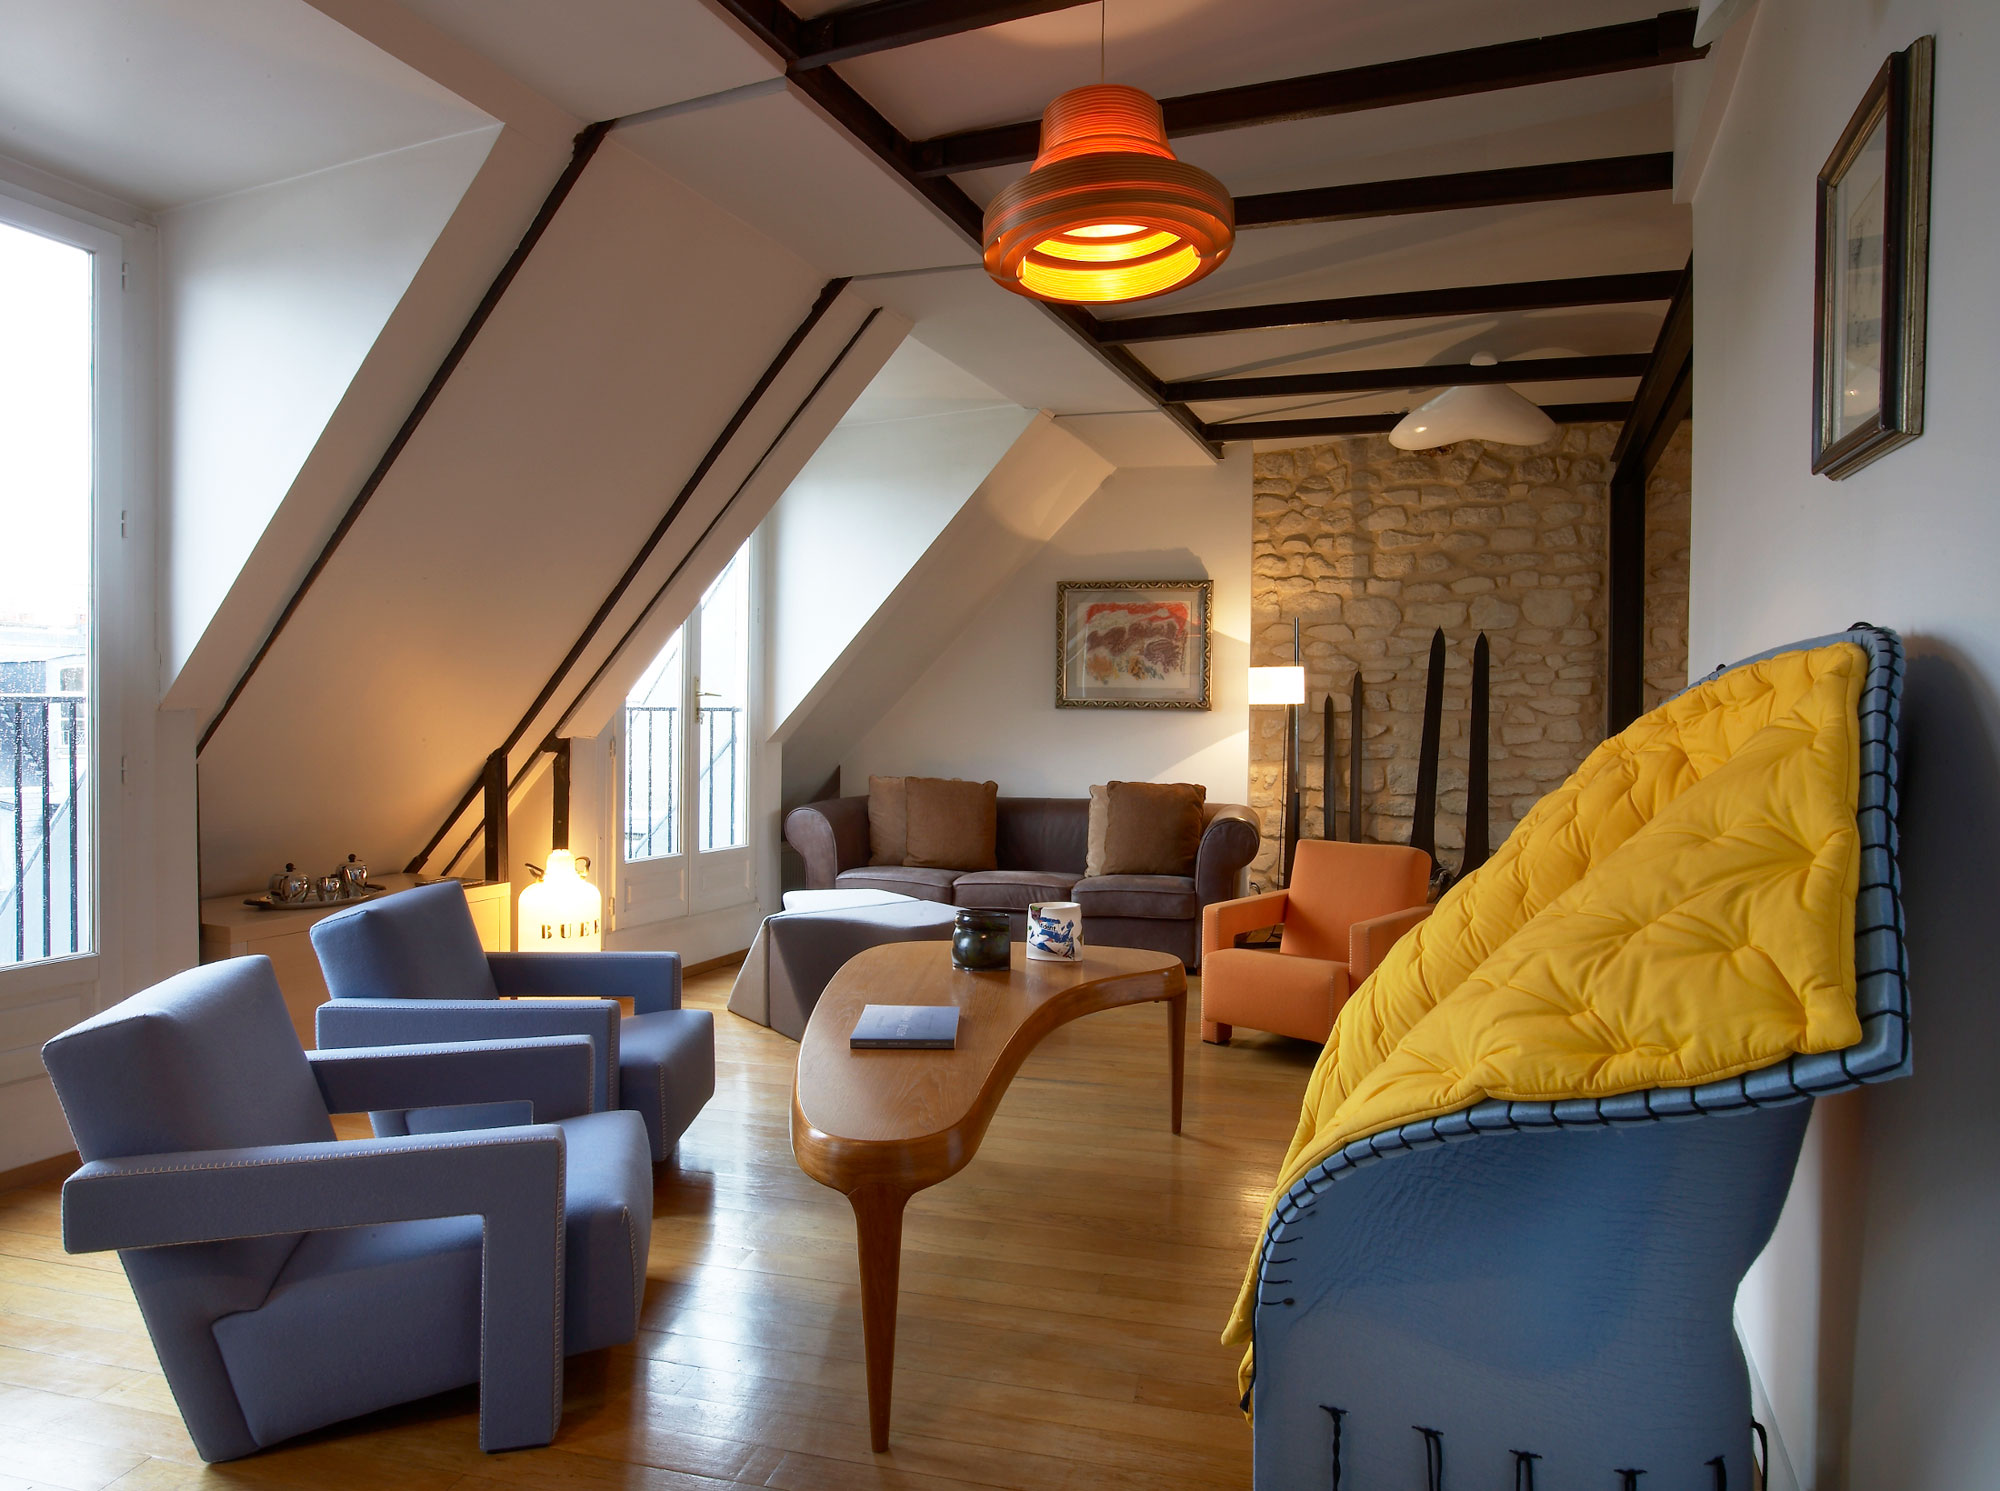 Apartment Renovation in Paris by VMCF Atelier